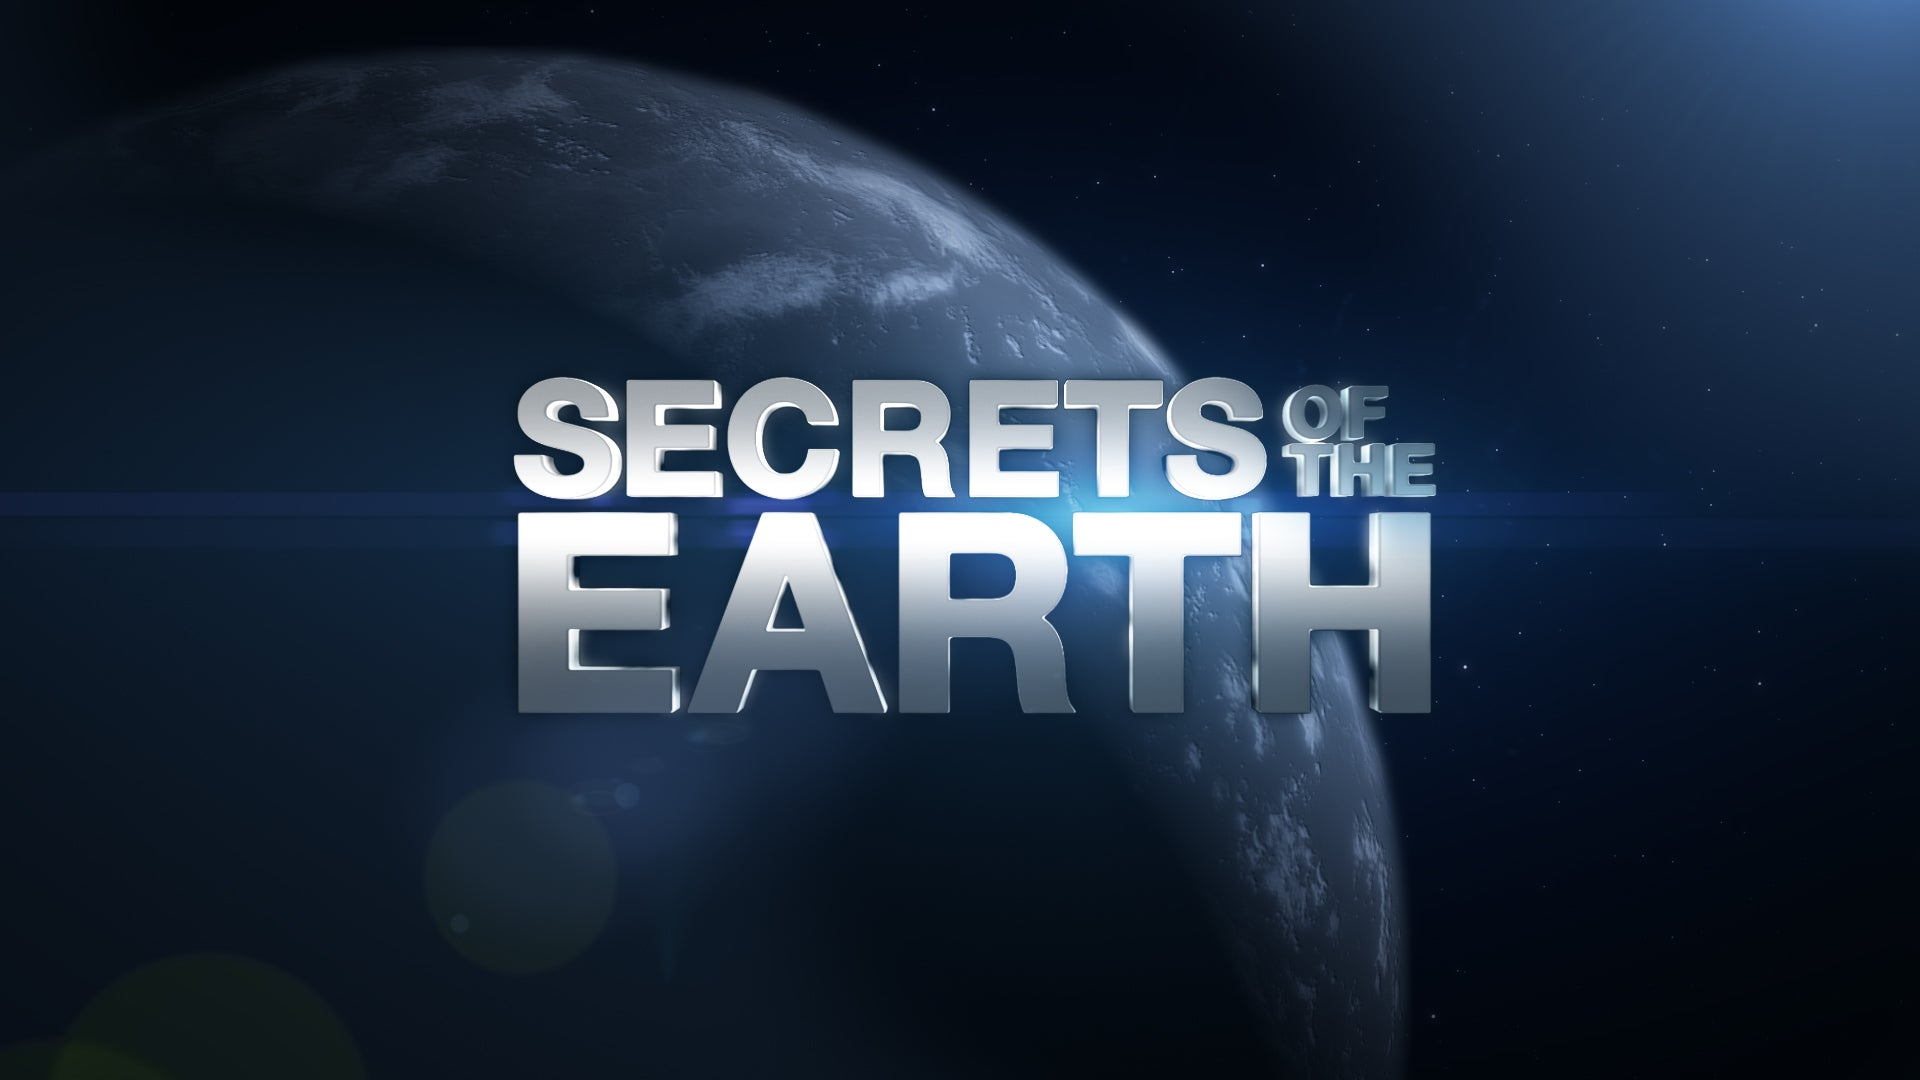 Secrets of the Earth: You Choose the Final Episode